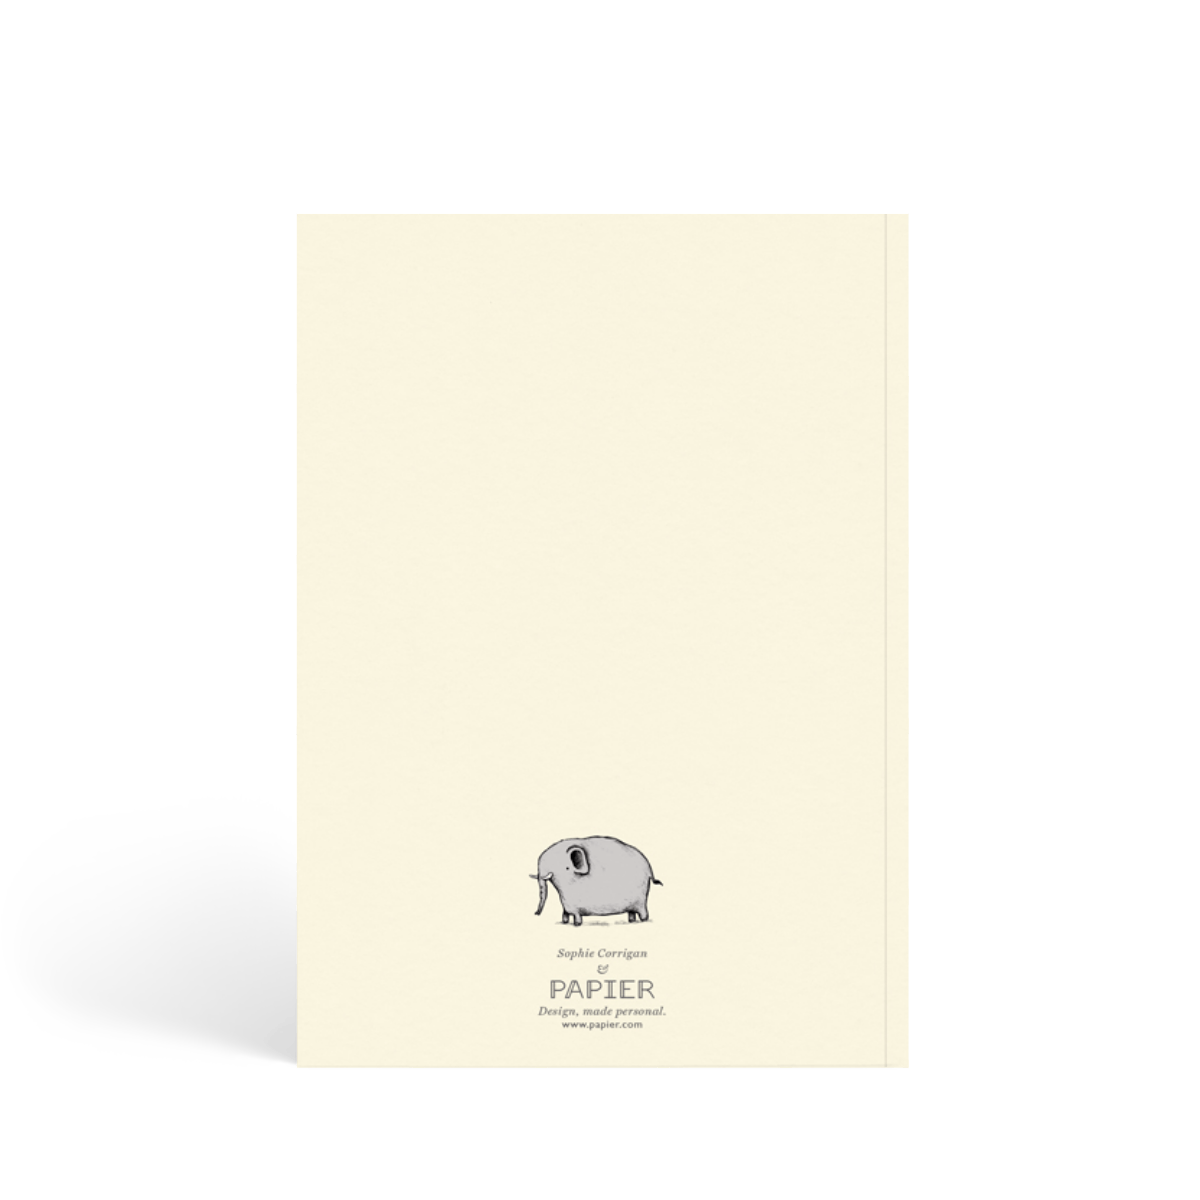 Https%3a%2f%2fwww.papier.com%2fproduct image%2f10052%2f5%2fanatomy of an elephant 2555 back 1470648095.png?ixlib=rb 1.1